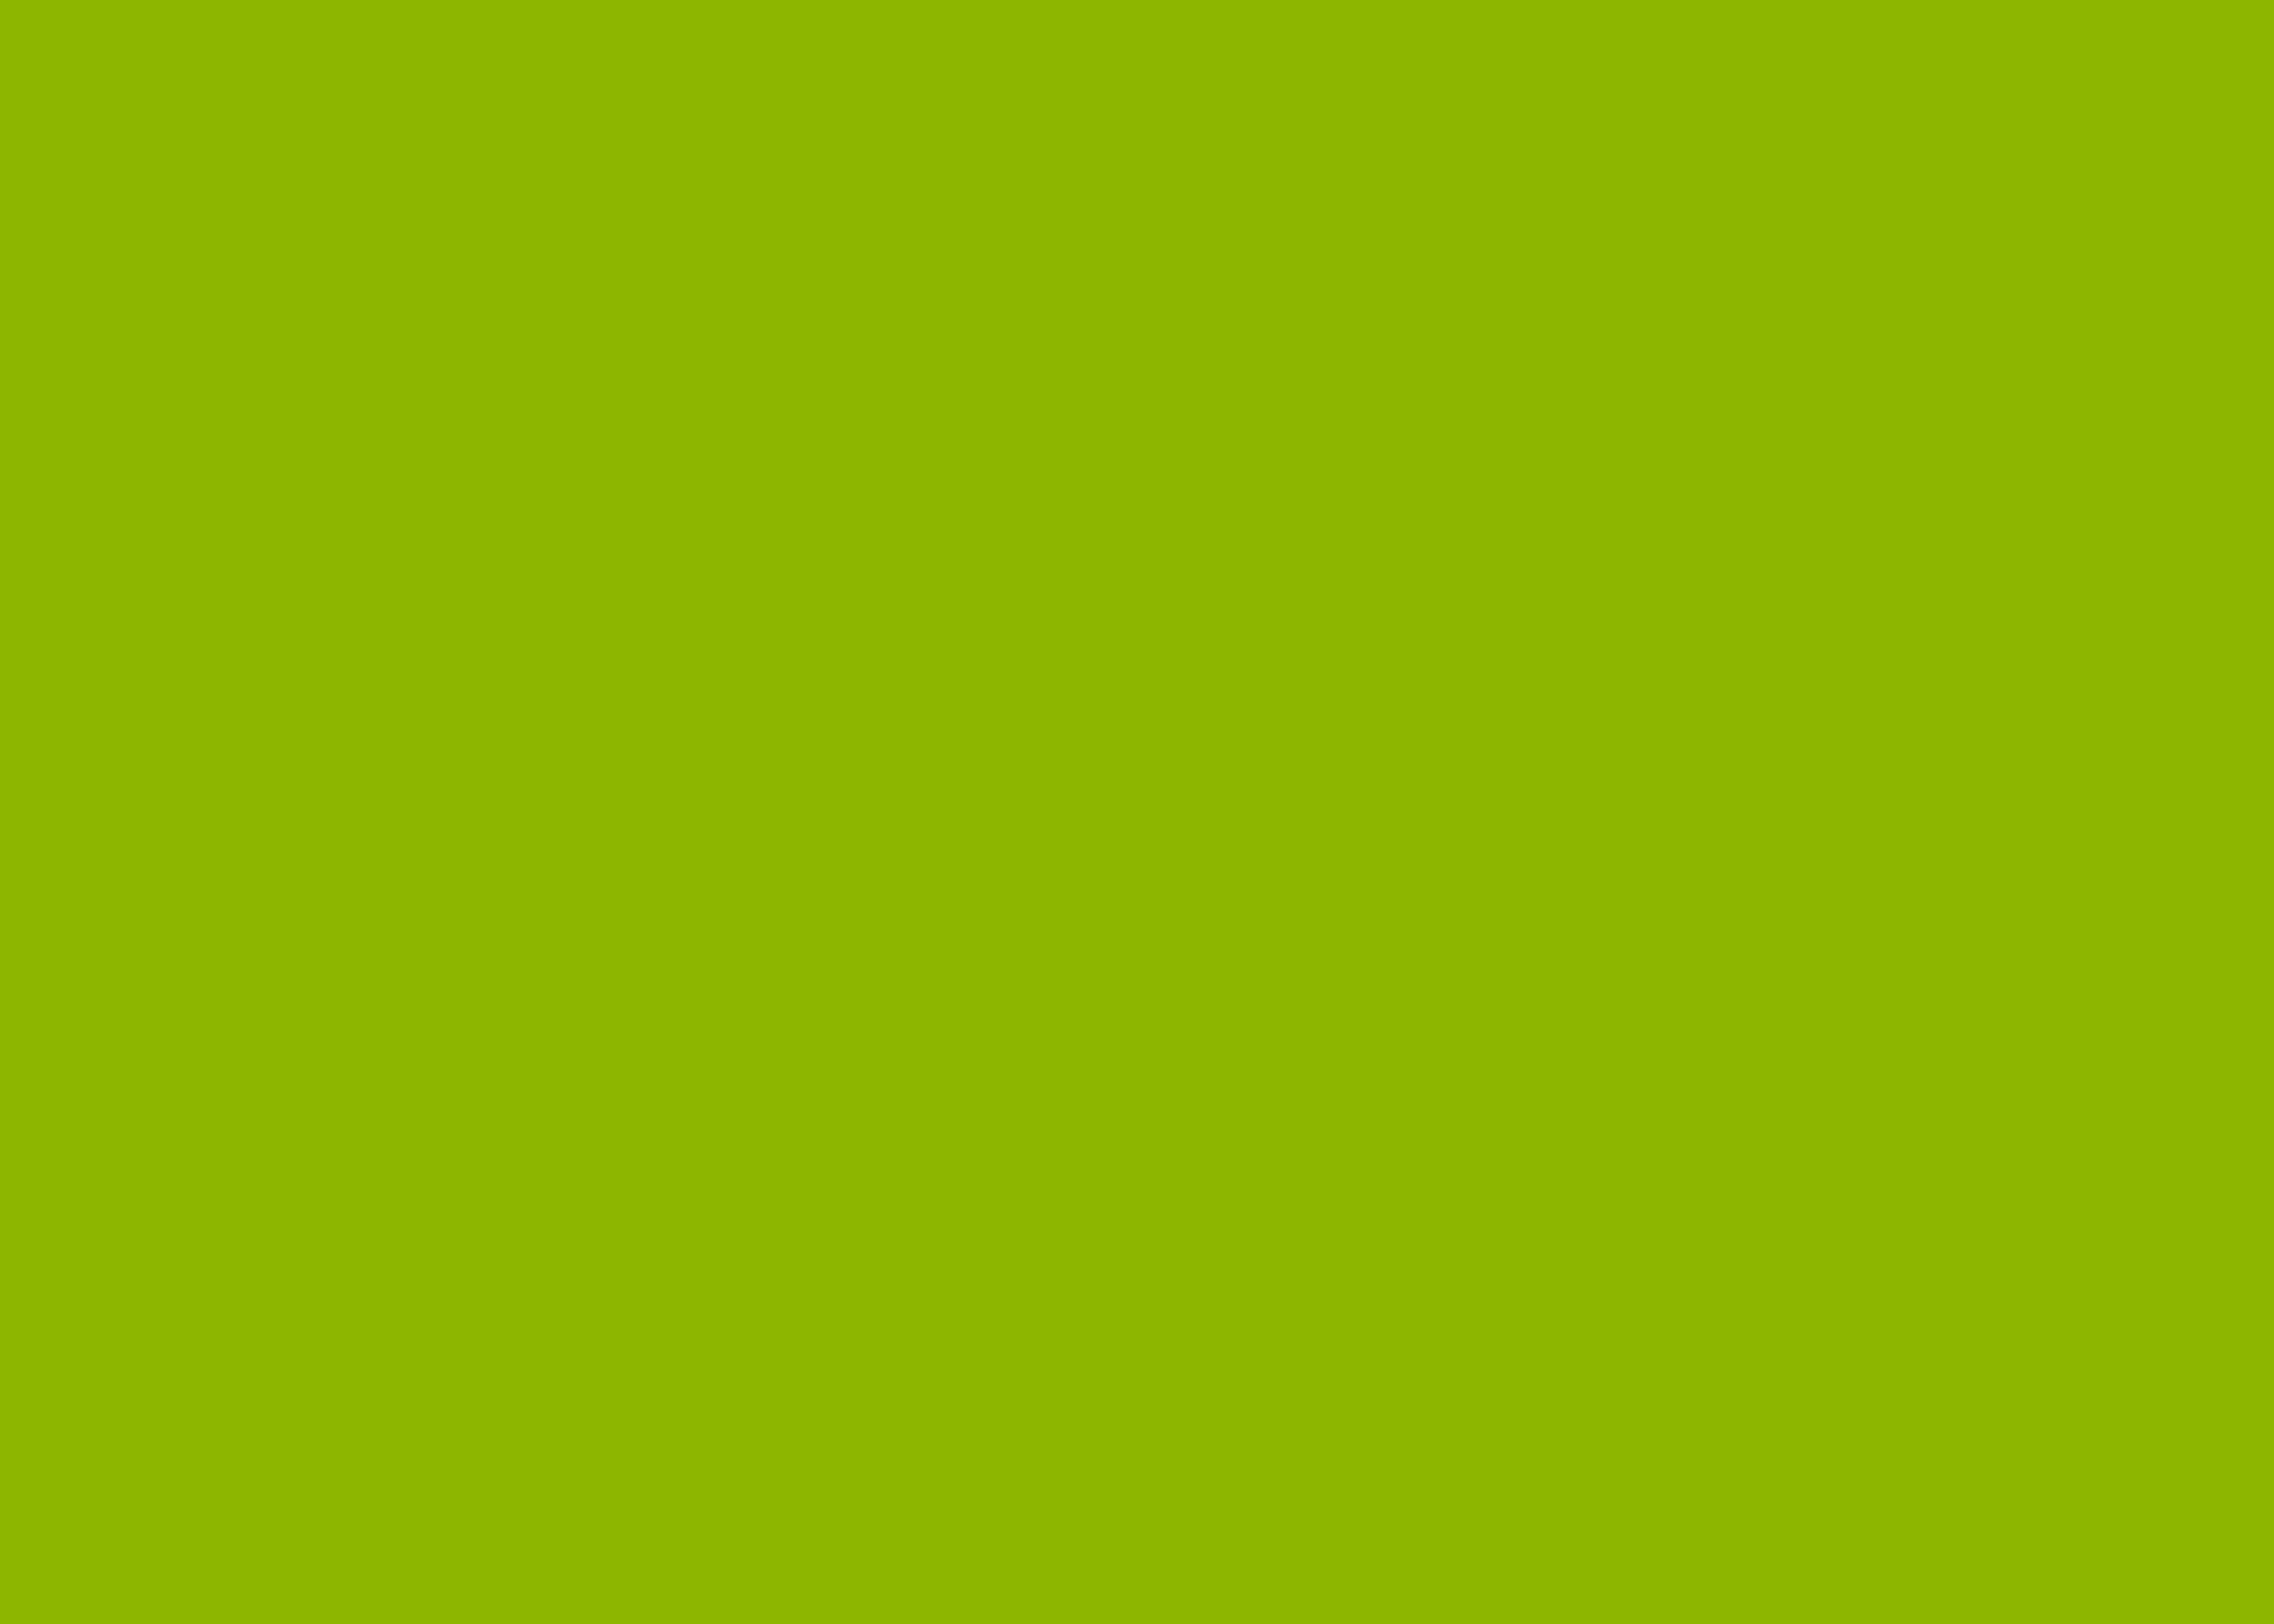 Apple Green (RGB) is a Yellow-Green color. The color apple green, a ...